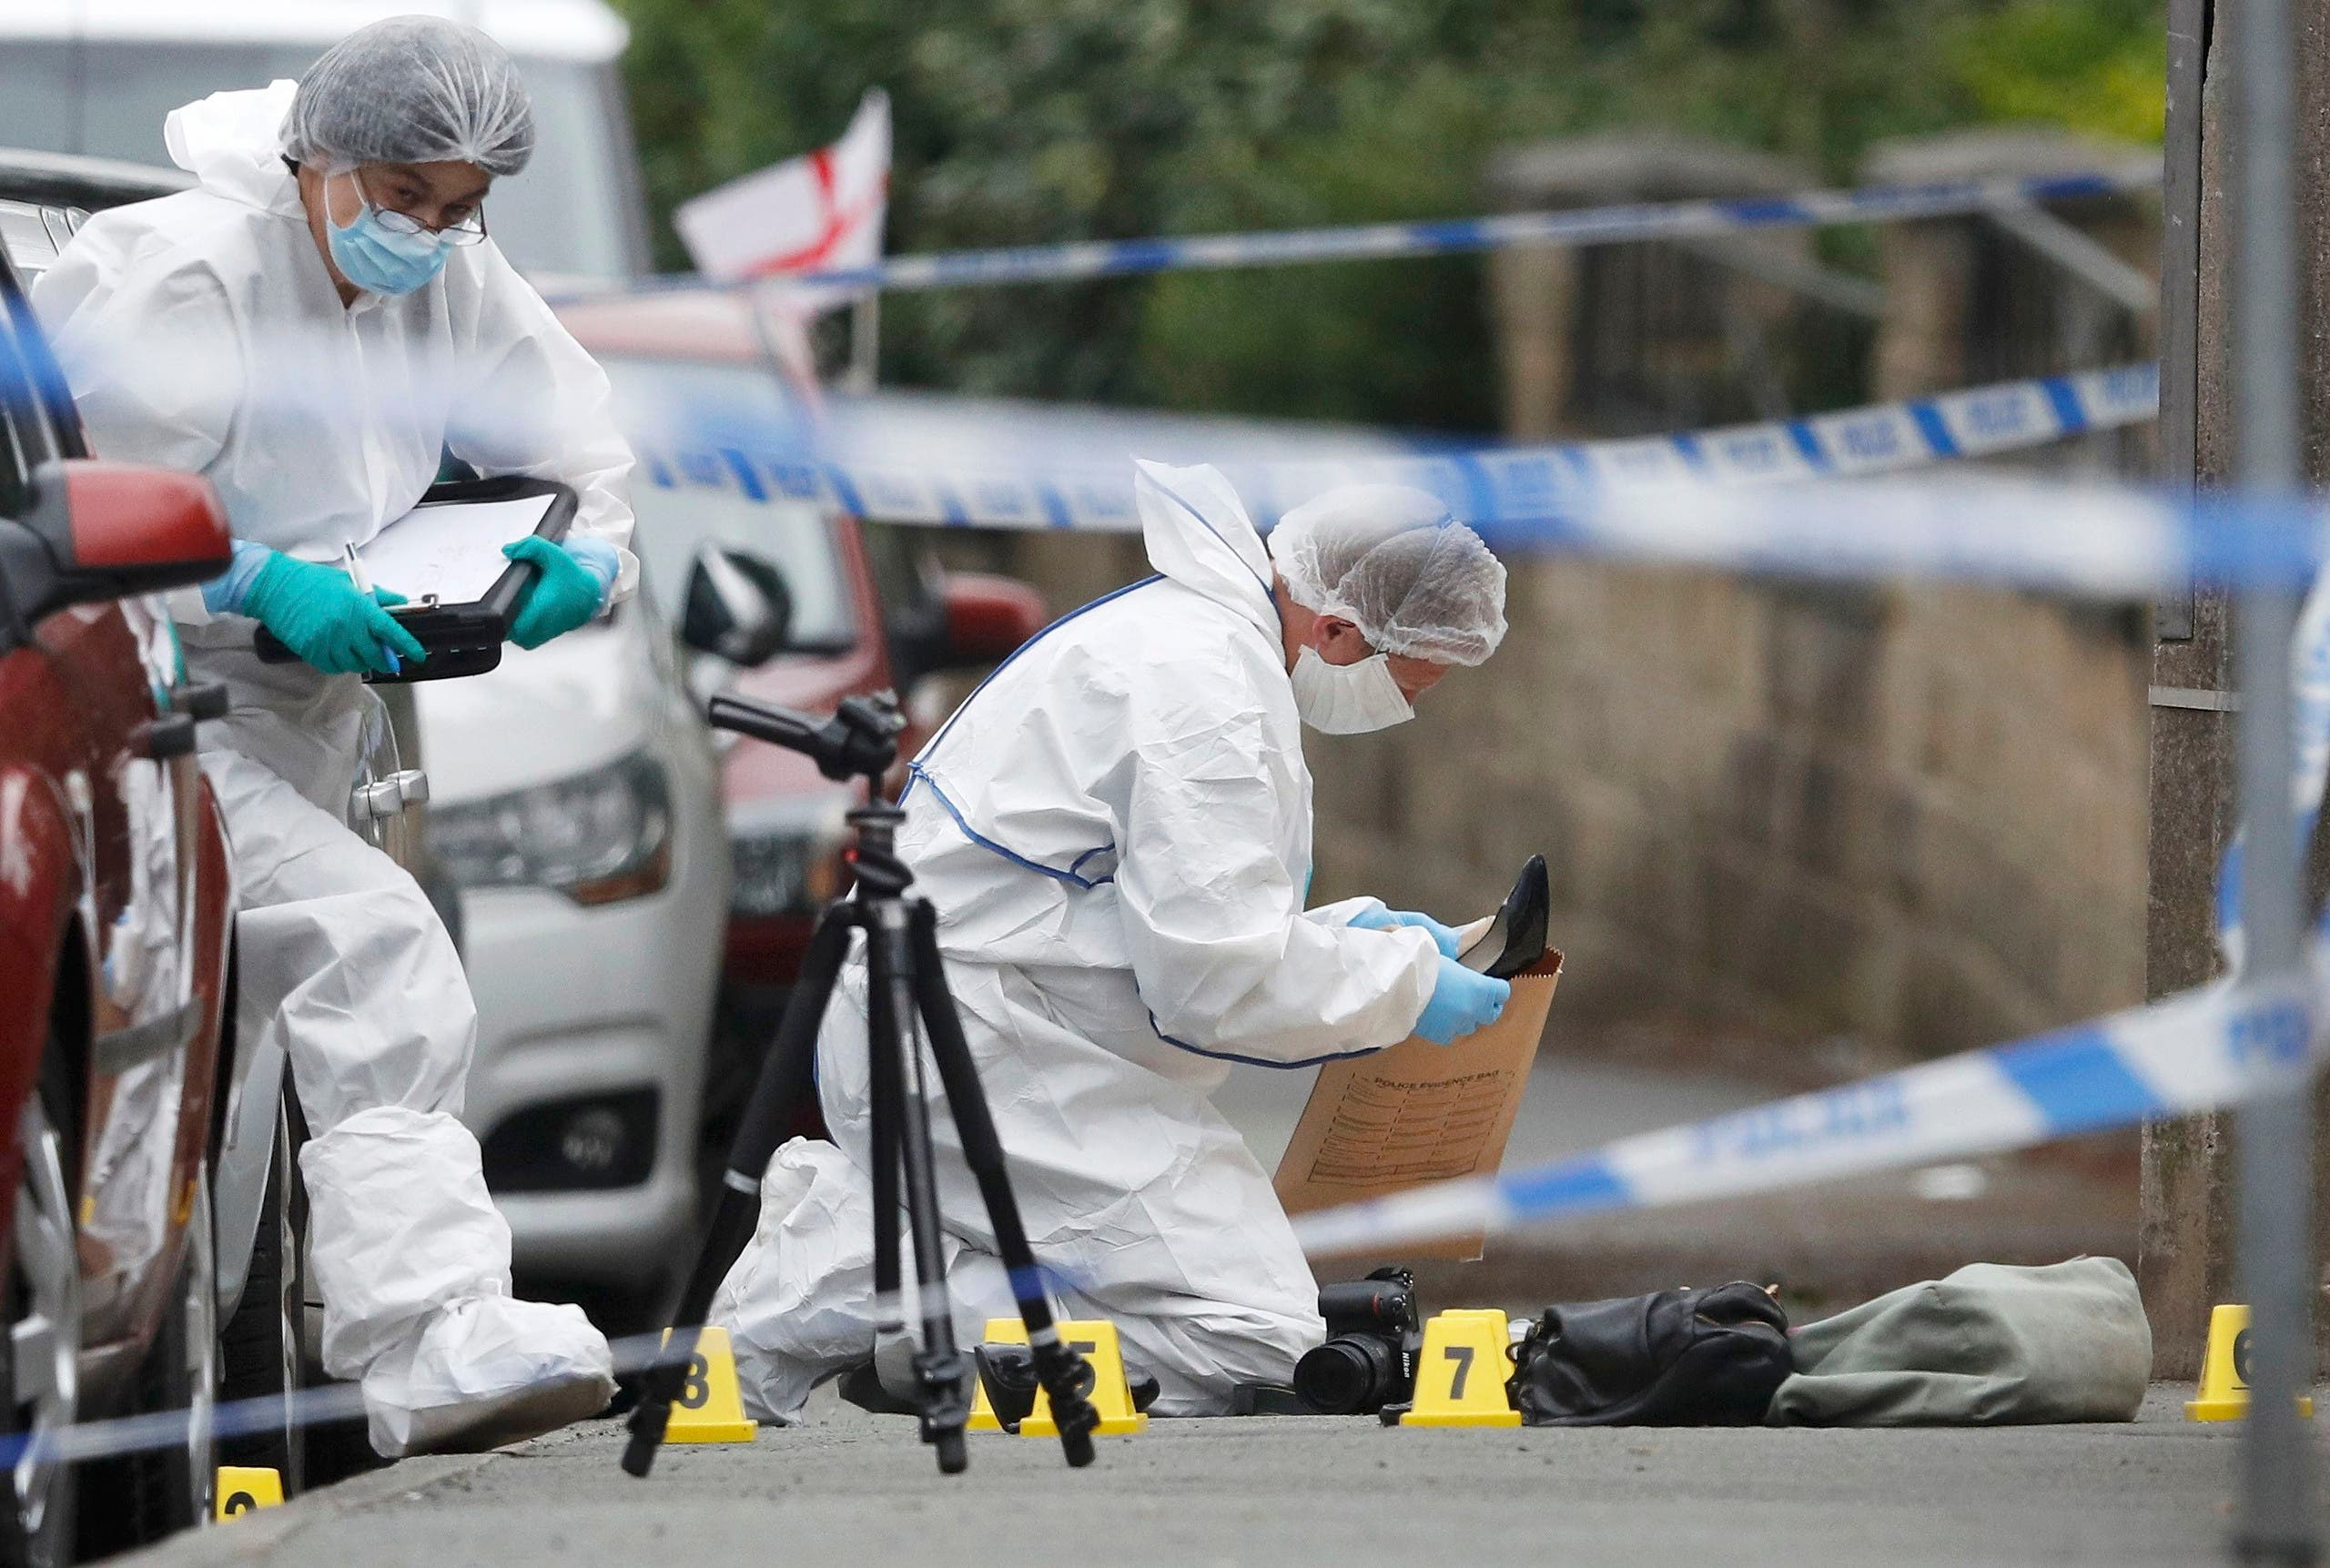 Forensics police officers collect a woman's shoes on the ground behind a police cordon in Birstall near Leeds, June 16, 2016. reuters